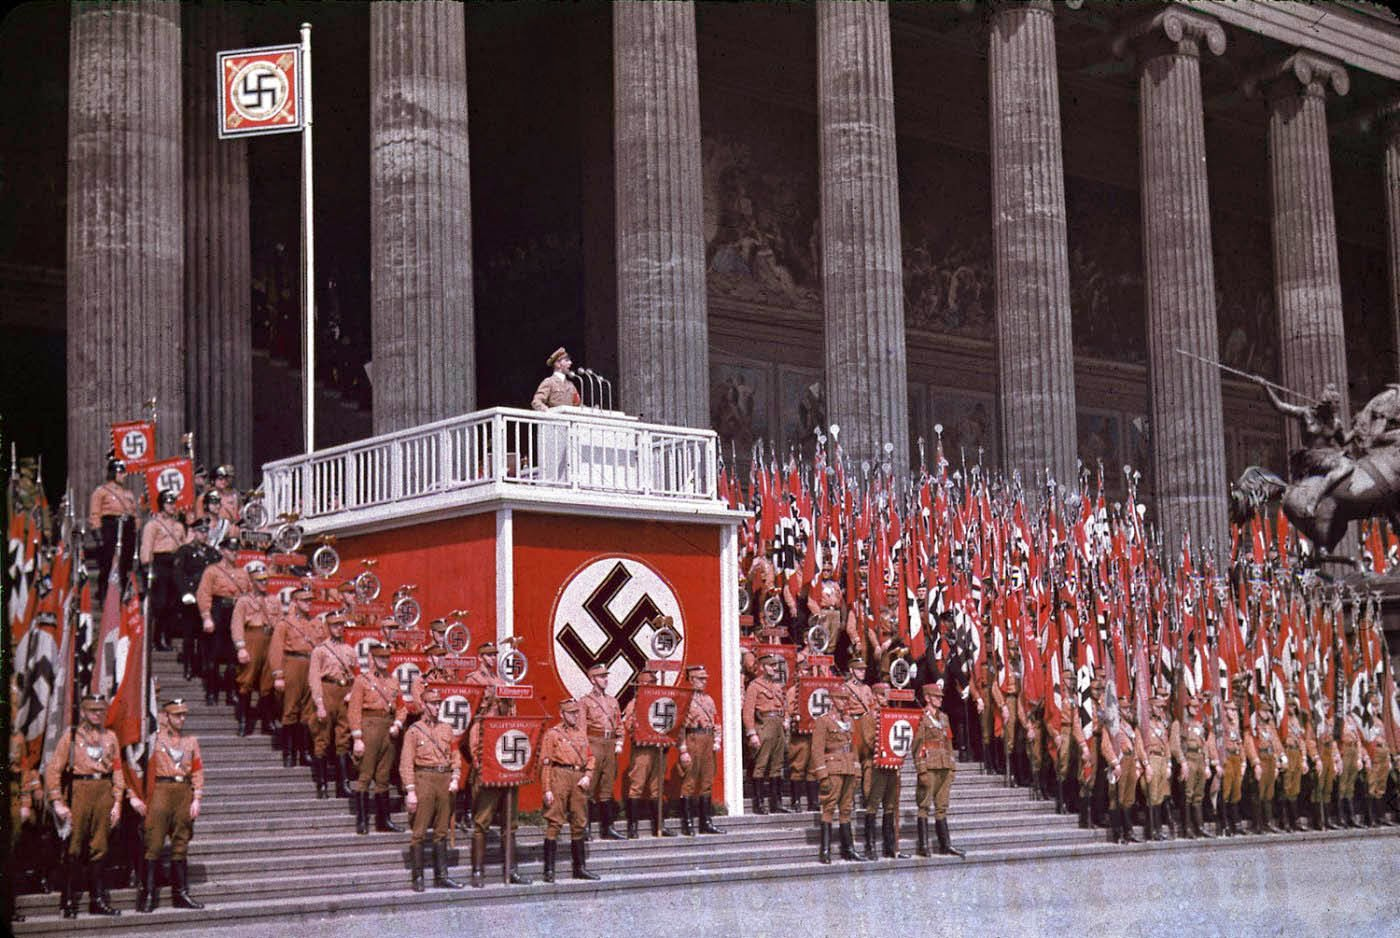 Reich Minister of Propaganda Joseph Goebbels speaking at the Lustgarten in Berlin, 1938.